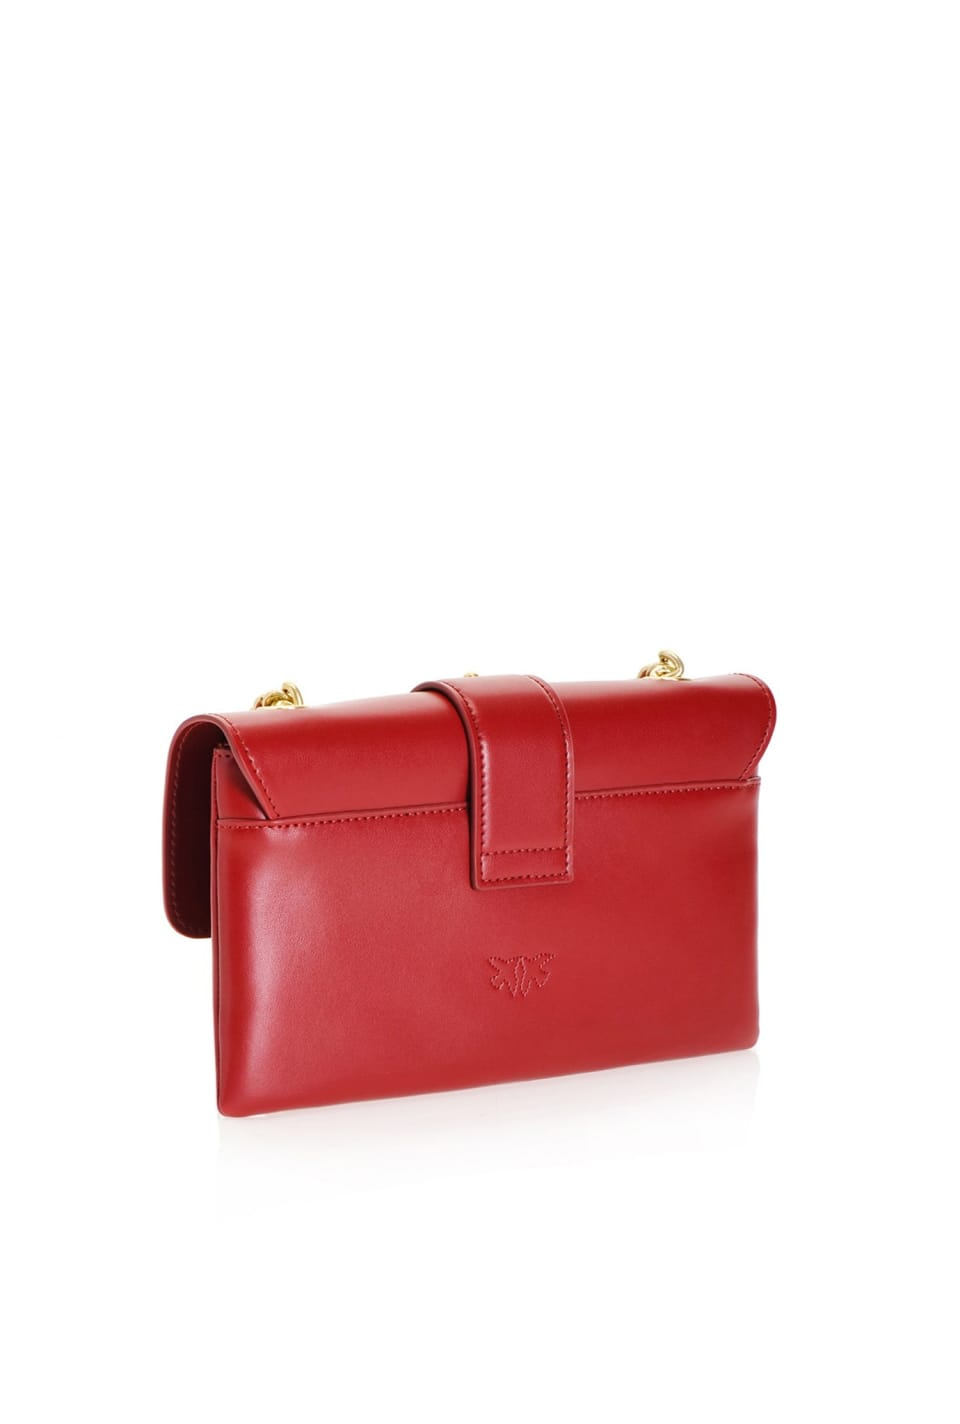 Simply Mini Love Bag Soft in leather - Pinko